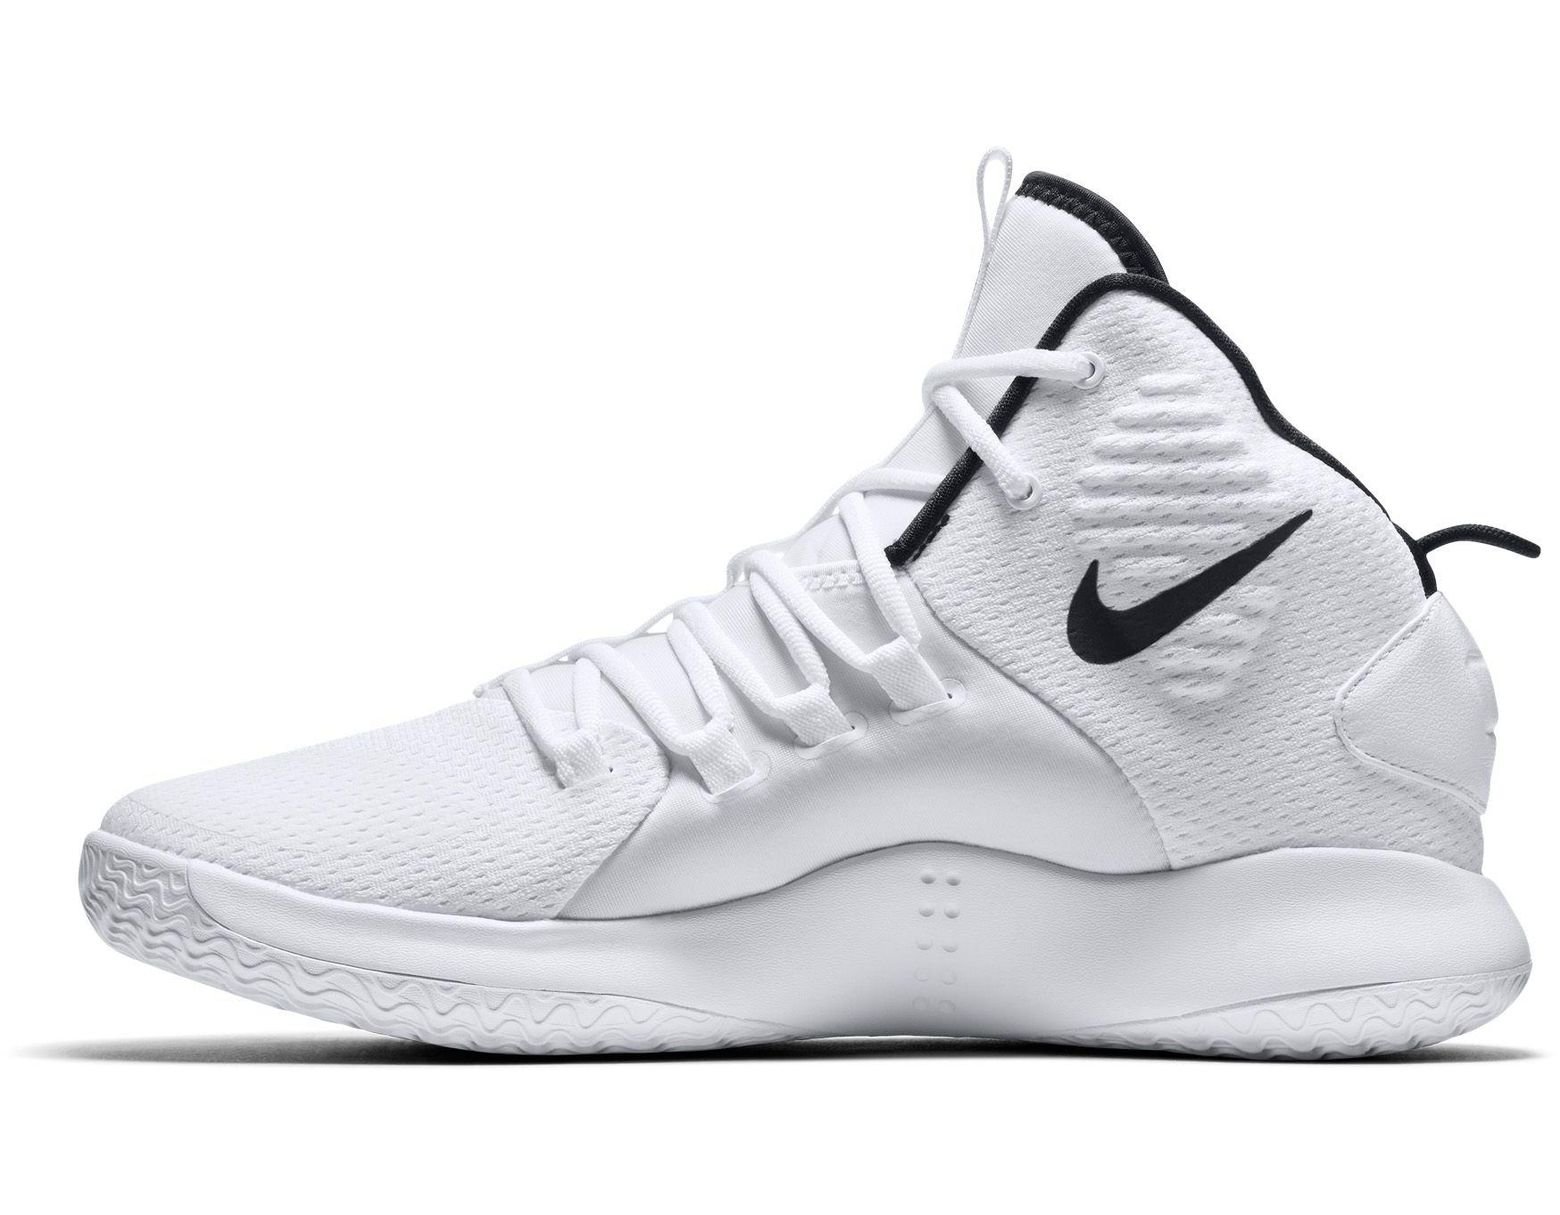 ae65c83c9b8a Nike Hyperdunk X Mid Tb Basketball Shoes in White for Men - Lyst